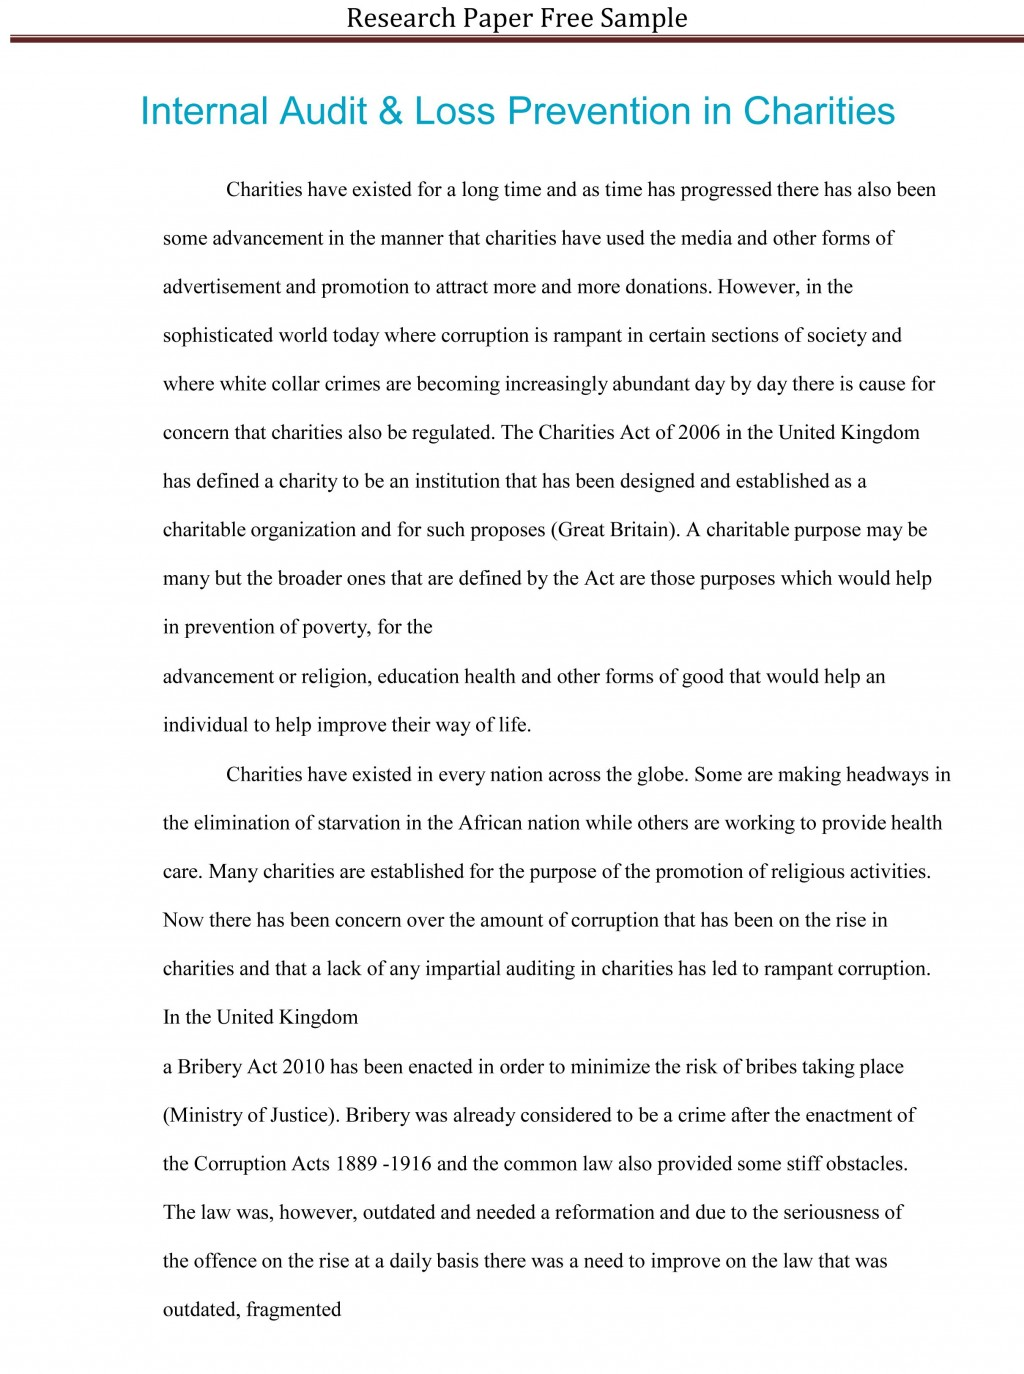 005 College Research Paper Unusual A Example Apa Format Of Large